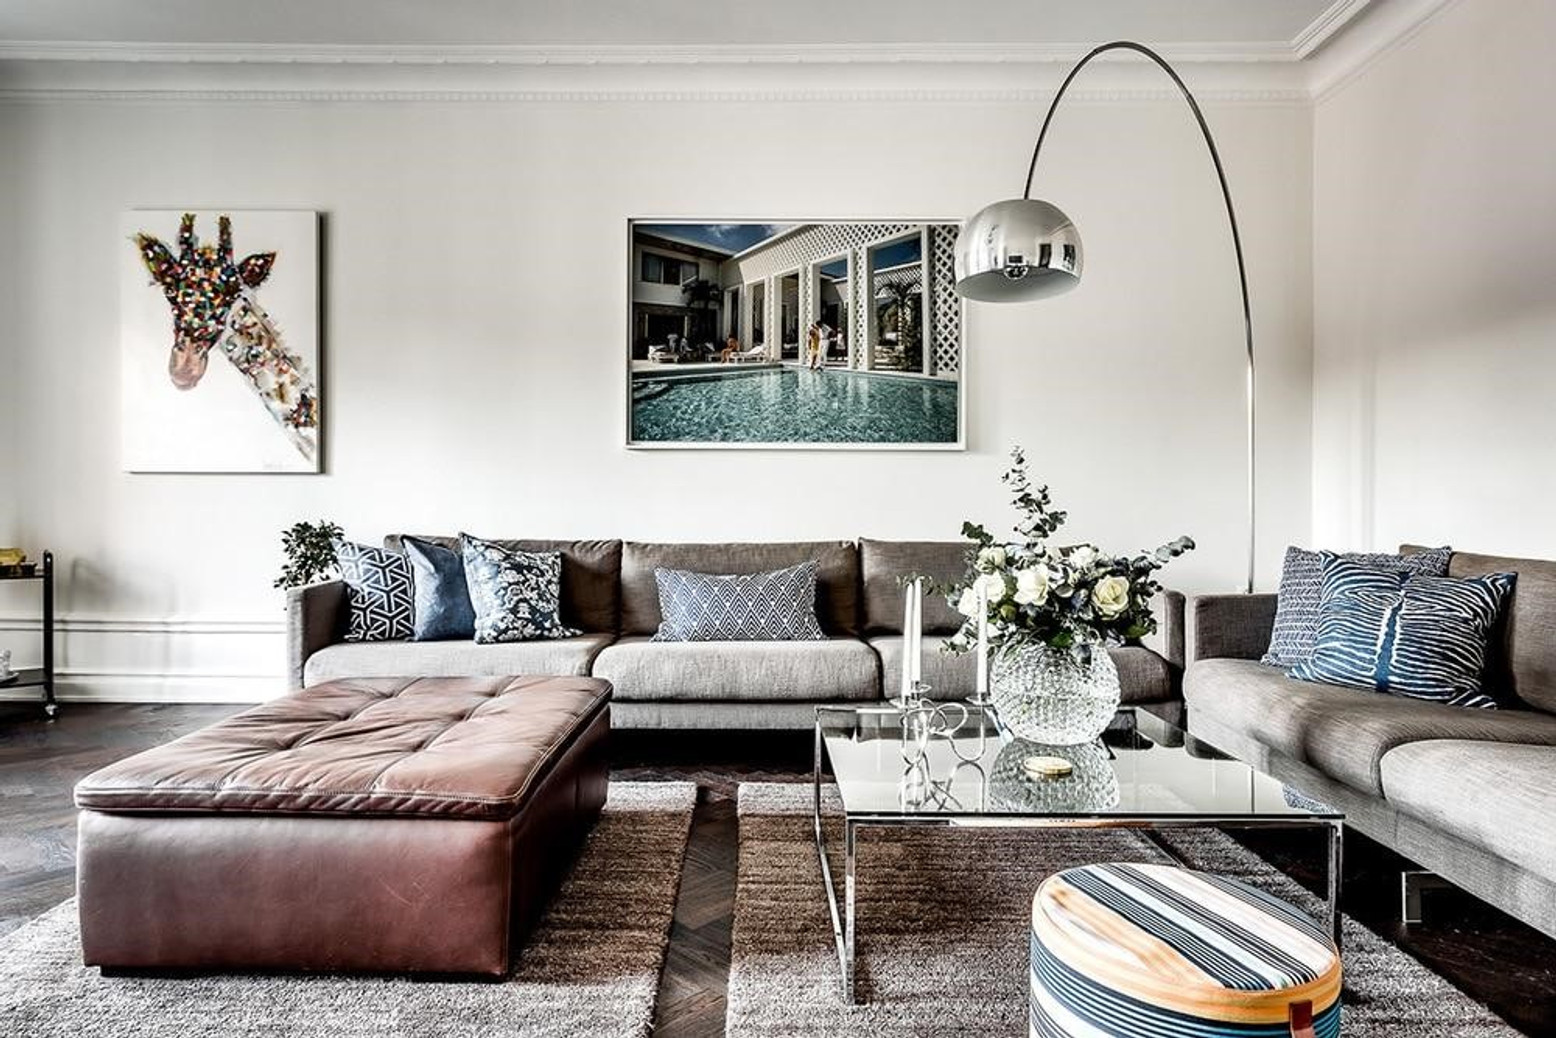 How to Choose the Perfect Floor Lamp for Your Living Space